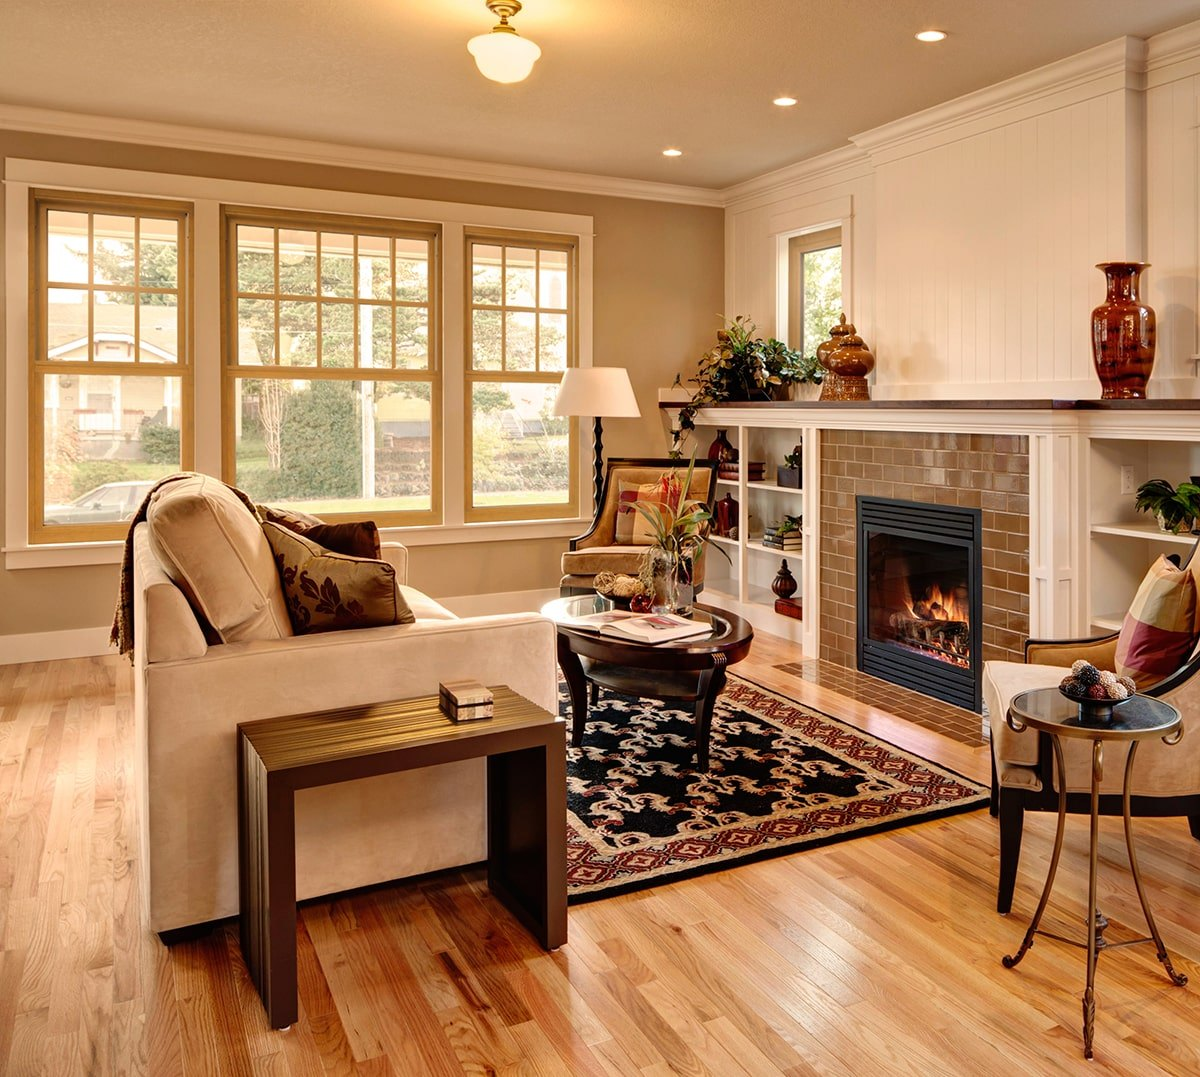 Aeris-Double-Hung-Windows-Living-Room-min